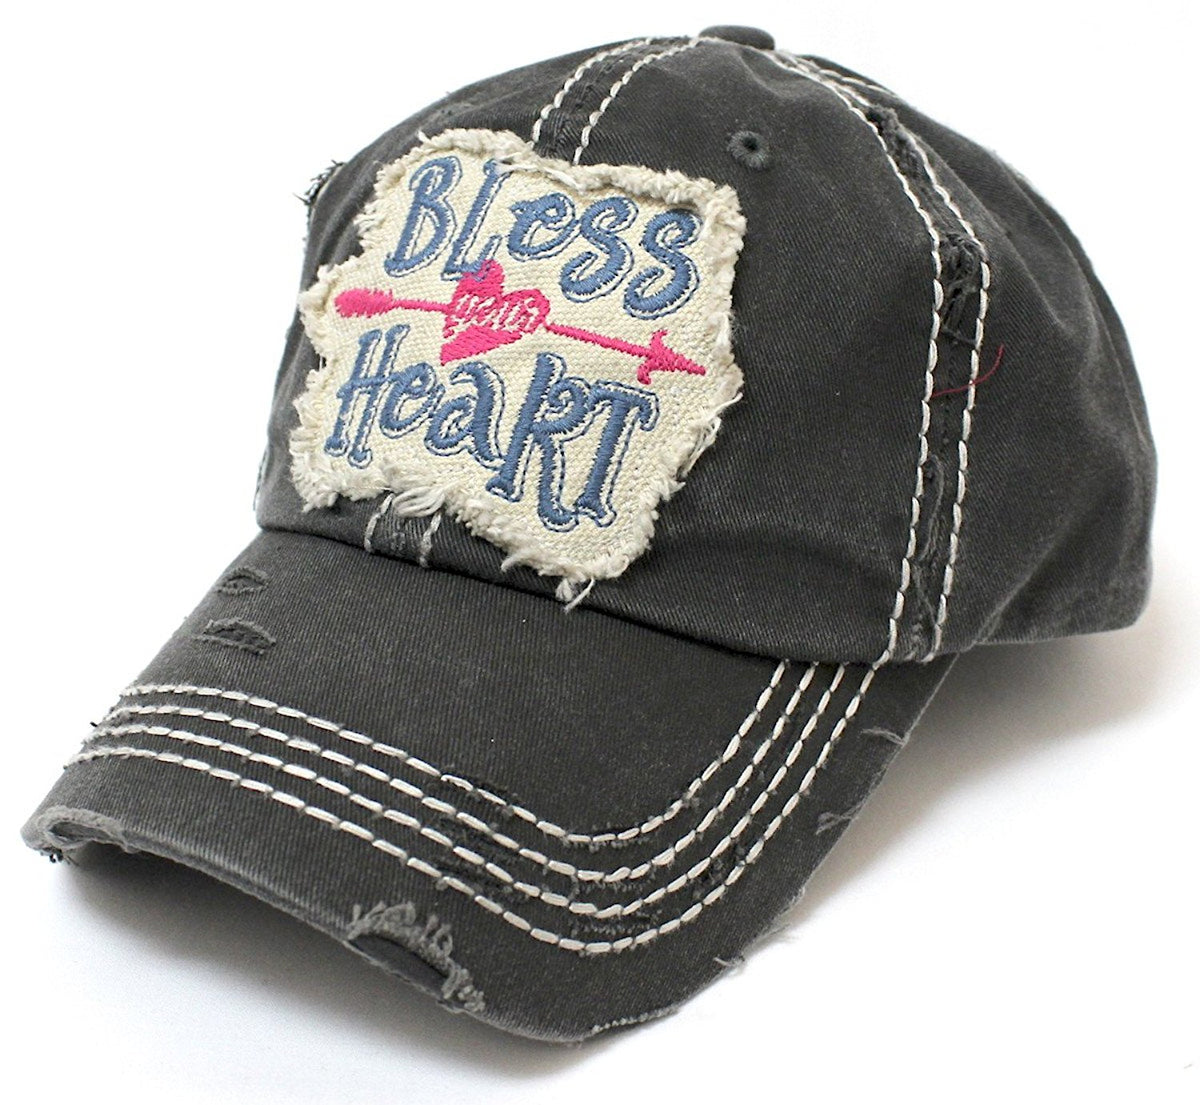 CAPS 'N VINTAGE Women's Bless Your Heart Vintage Embroidery Baseball Hat - Caps 'N Vintage